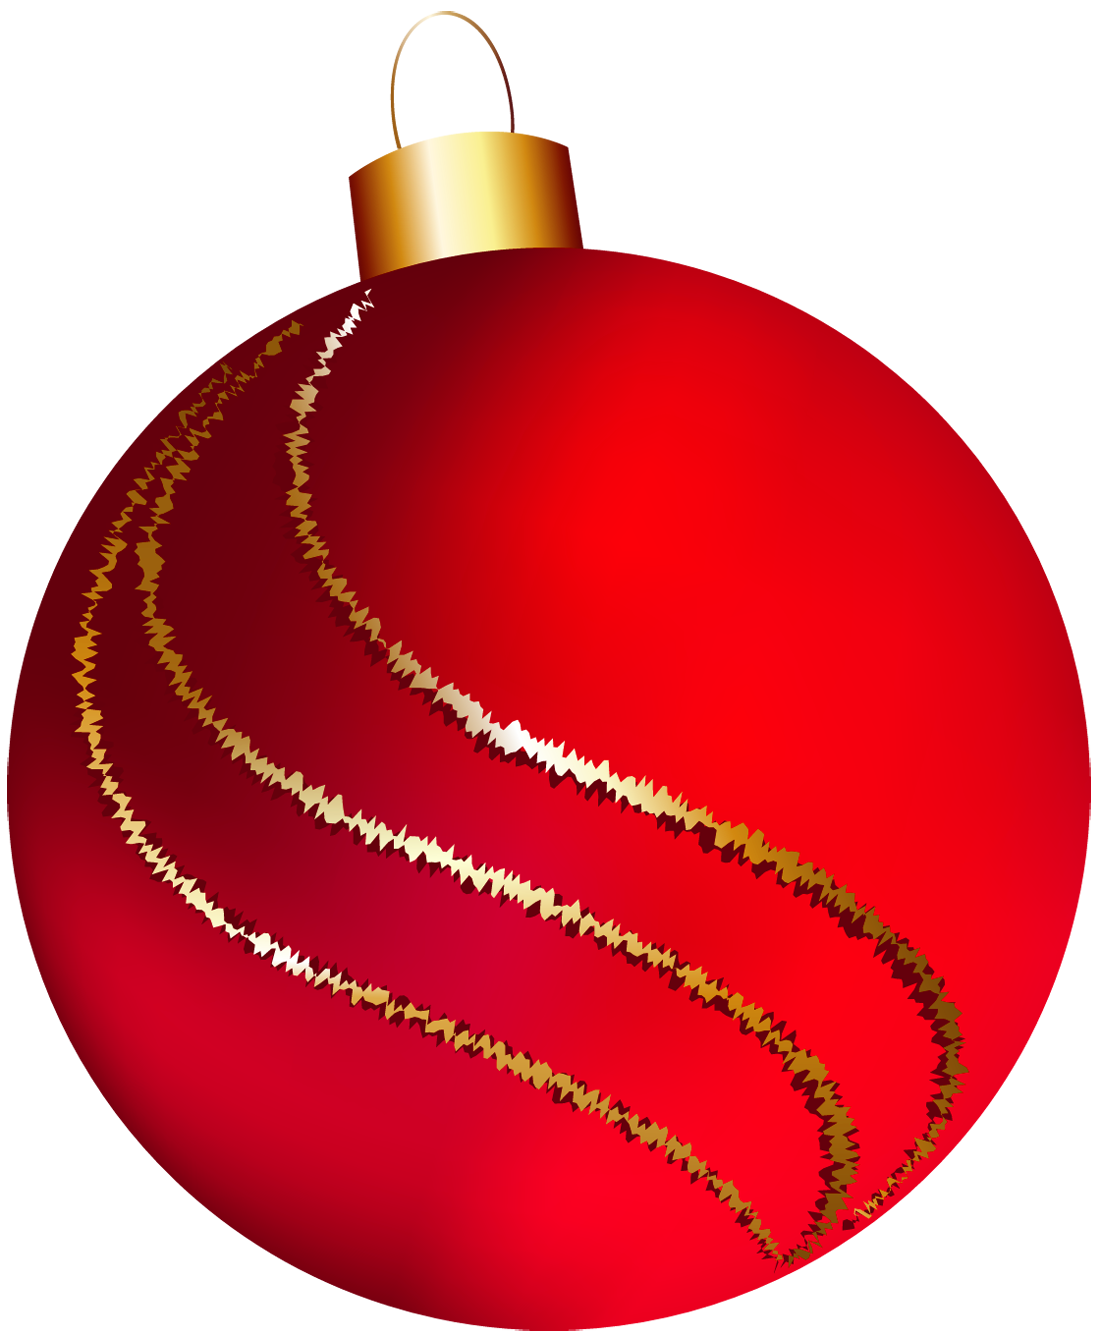 Transparent christmas large red ornament clipart clipart for Weihnachtskugeln transparent